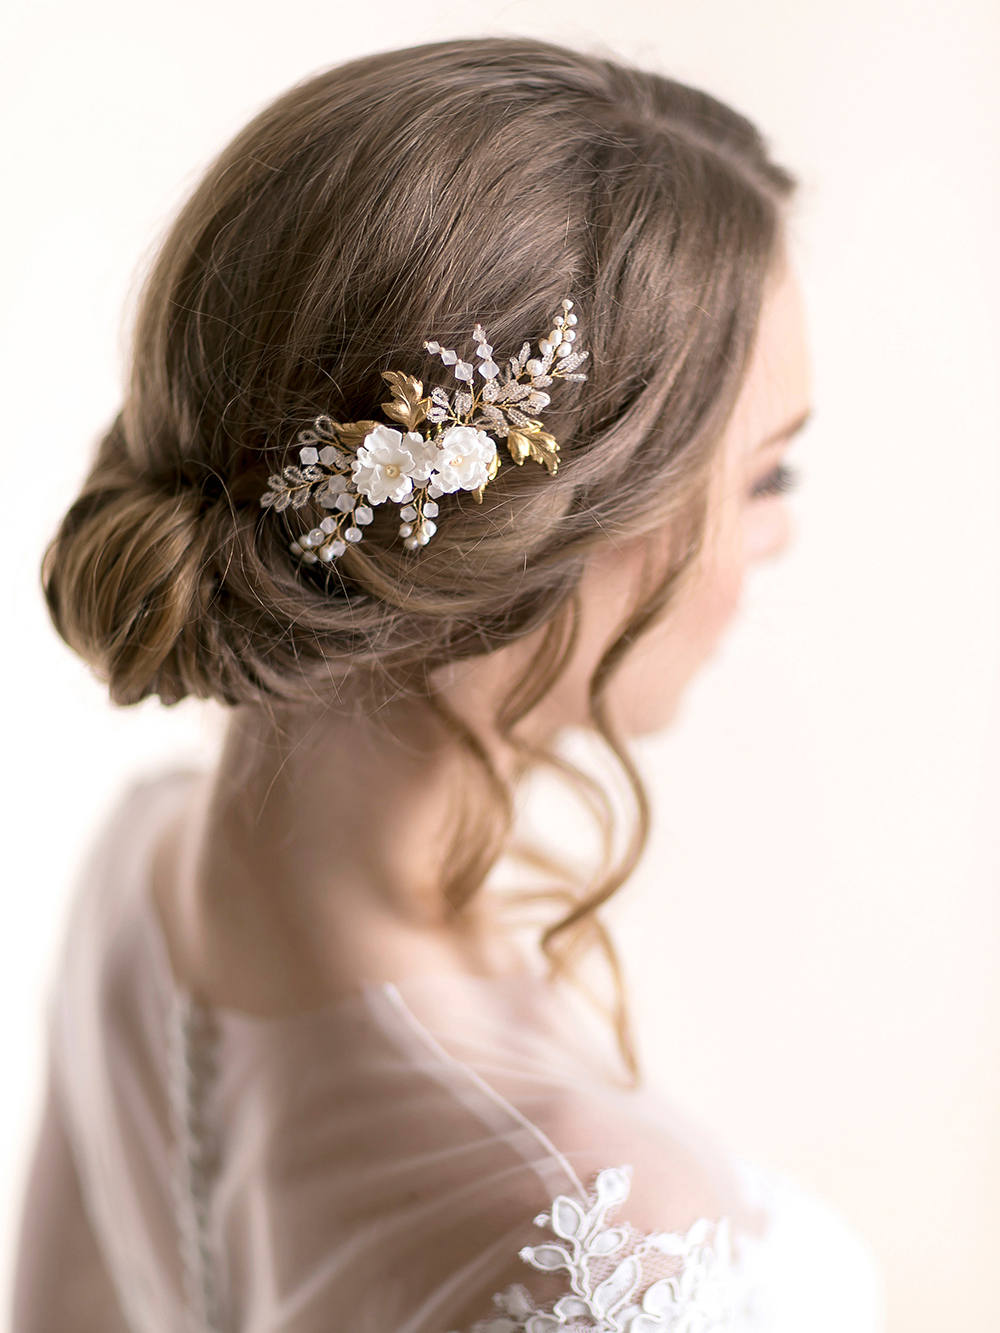 Floral Bridal Hair Comb With Silk Flowers & Vine Leaves - Accessory Flower Wedding Headpiece Rose Gold